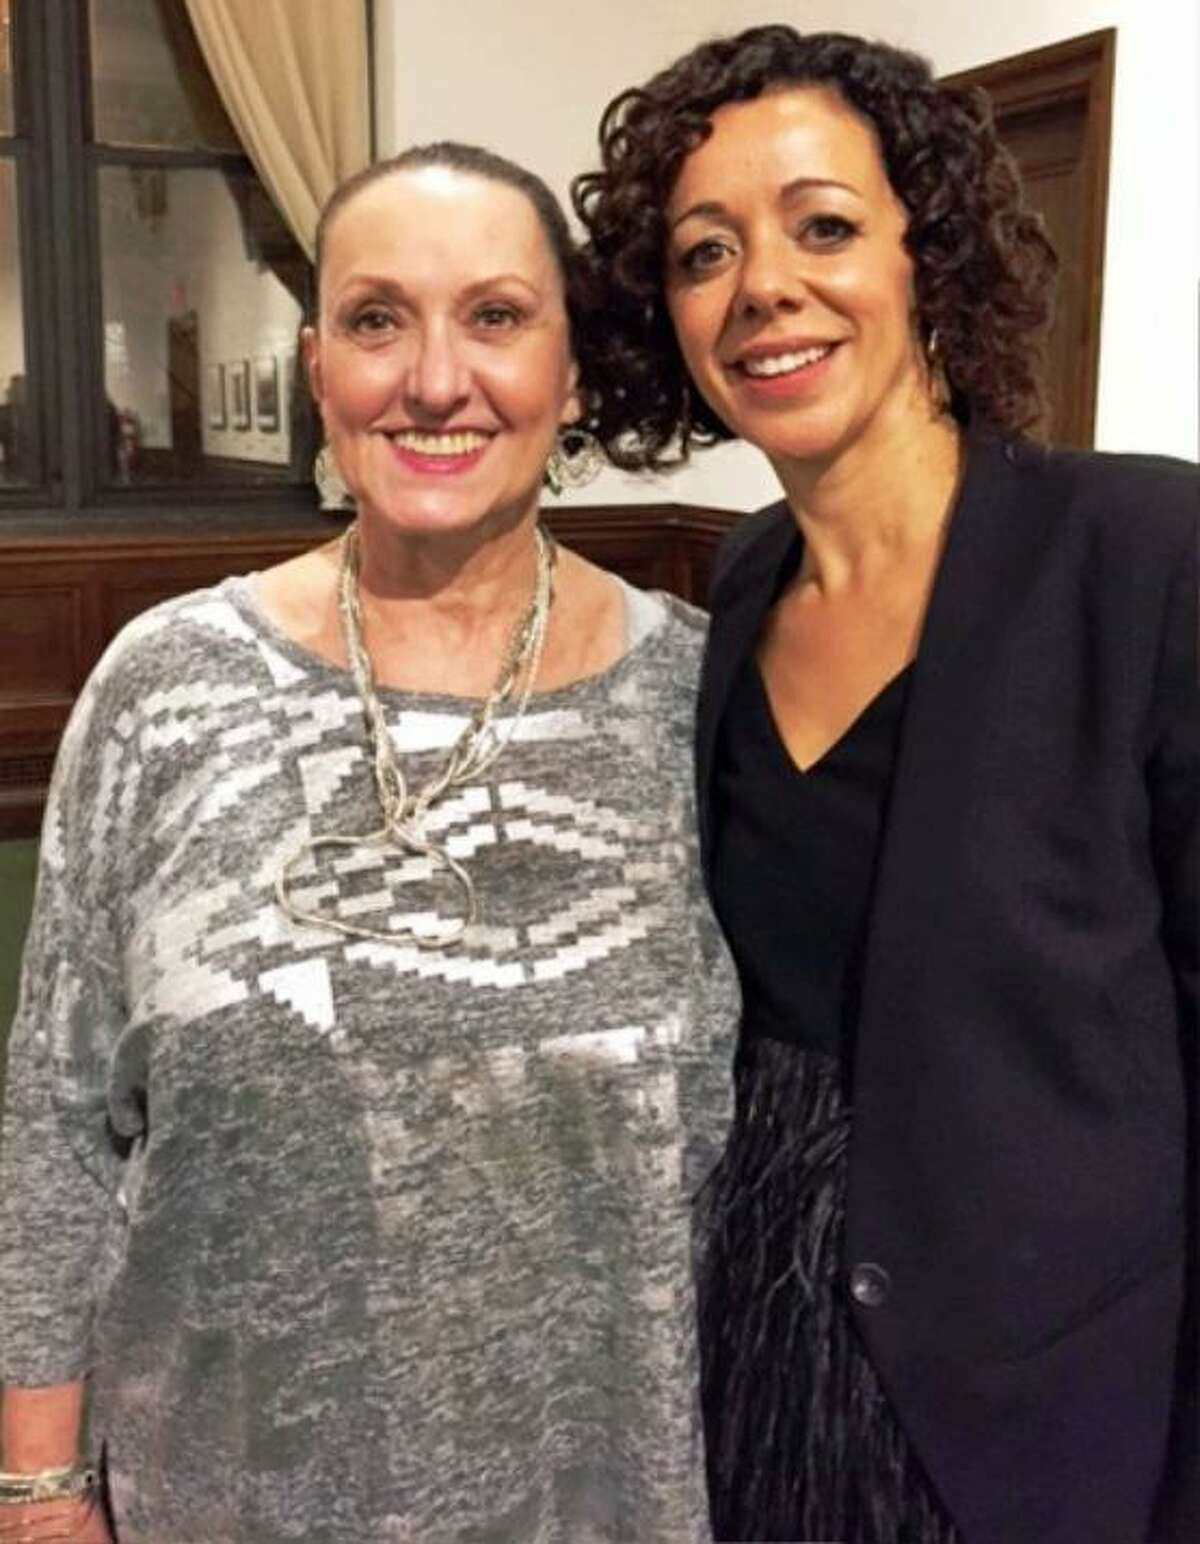 Greenwich native Jeannette LoVetri, a well-regarded voice teacher, has worked with top-notch talent, including Grammy Award-winner Luciana Sousa.